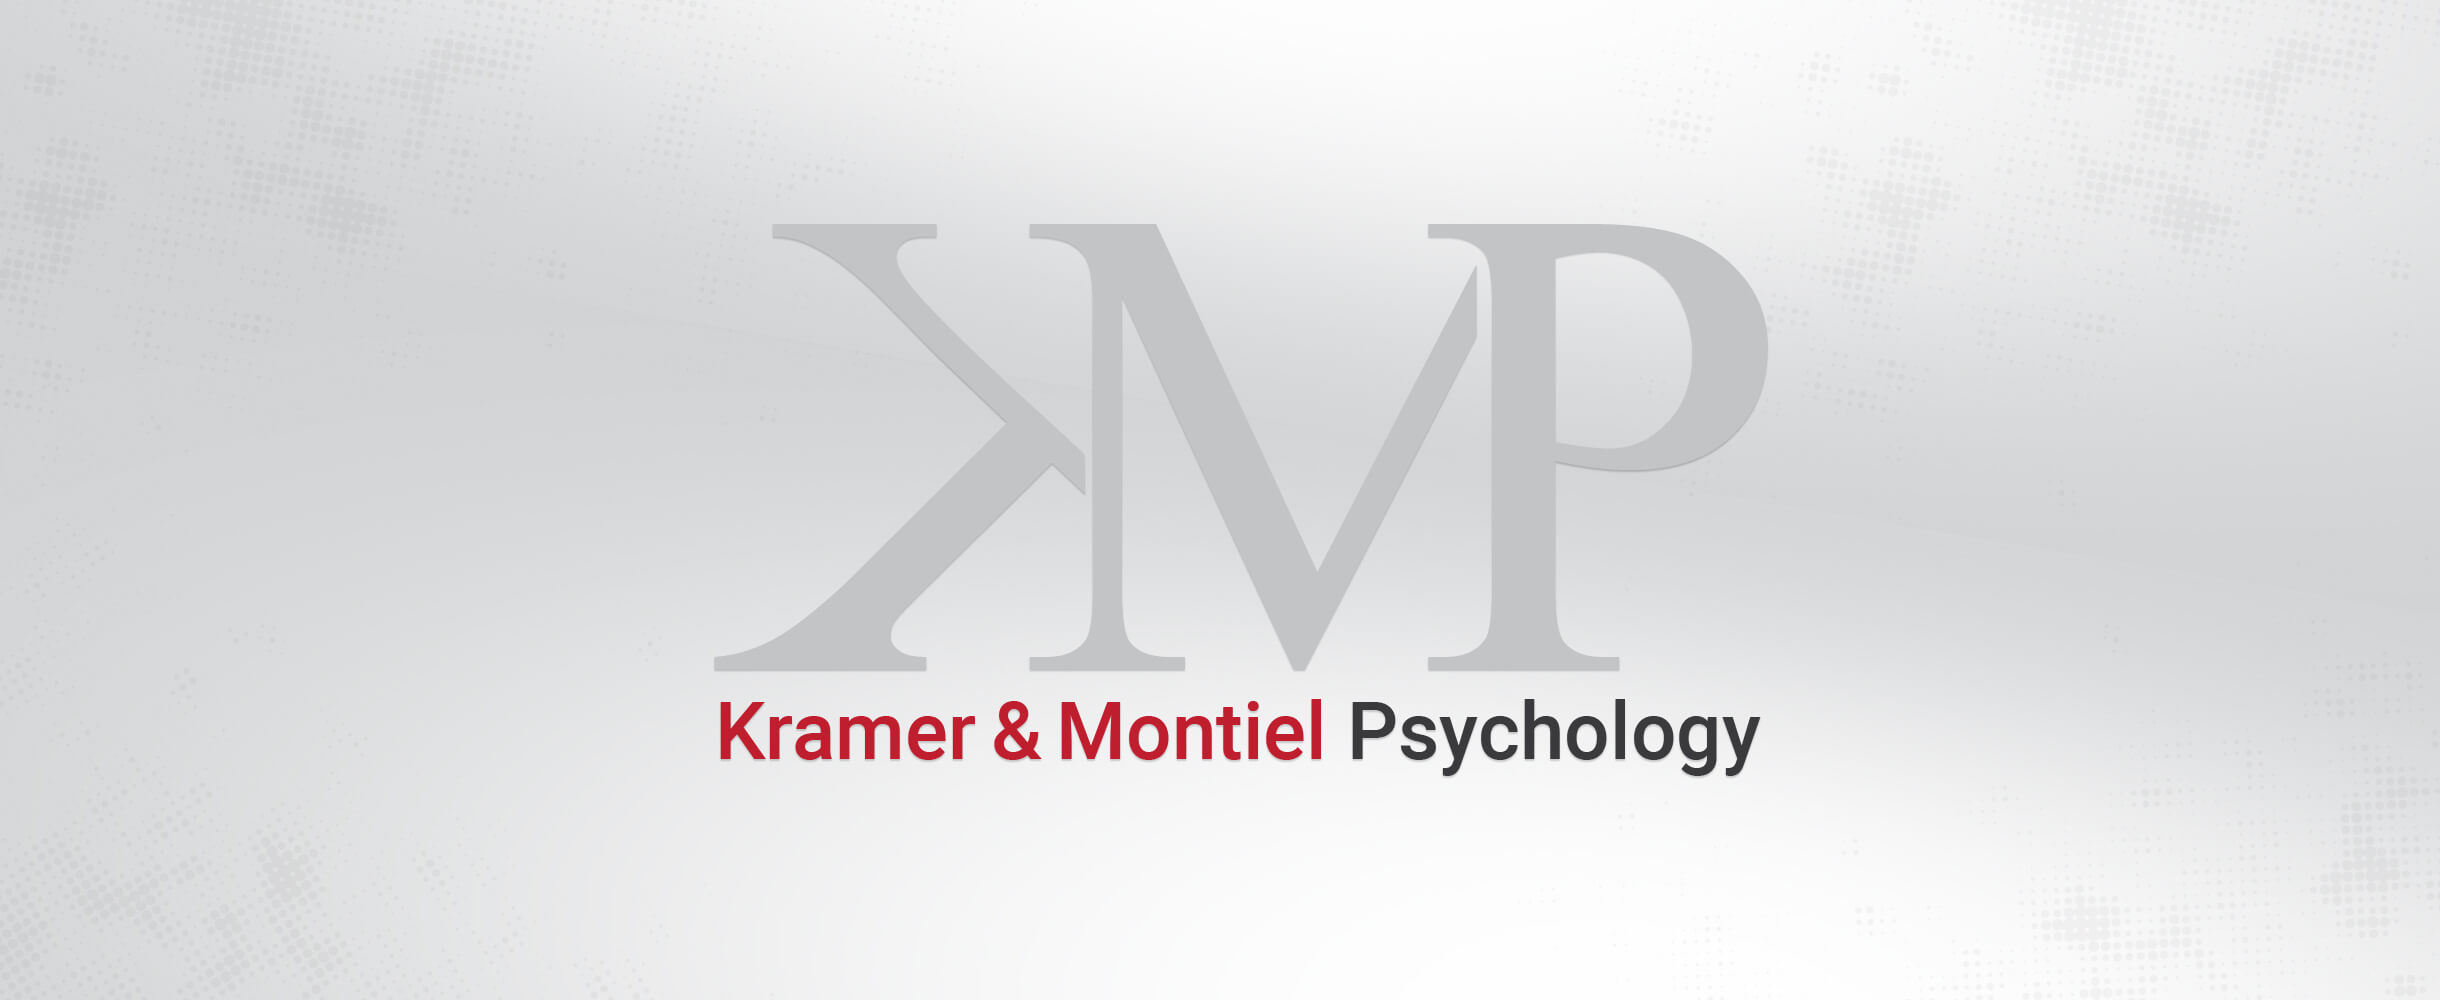 kramer & montiel psychology logo